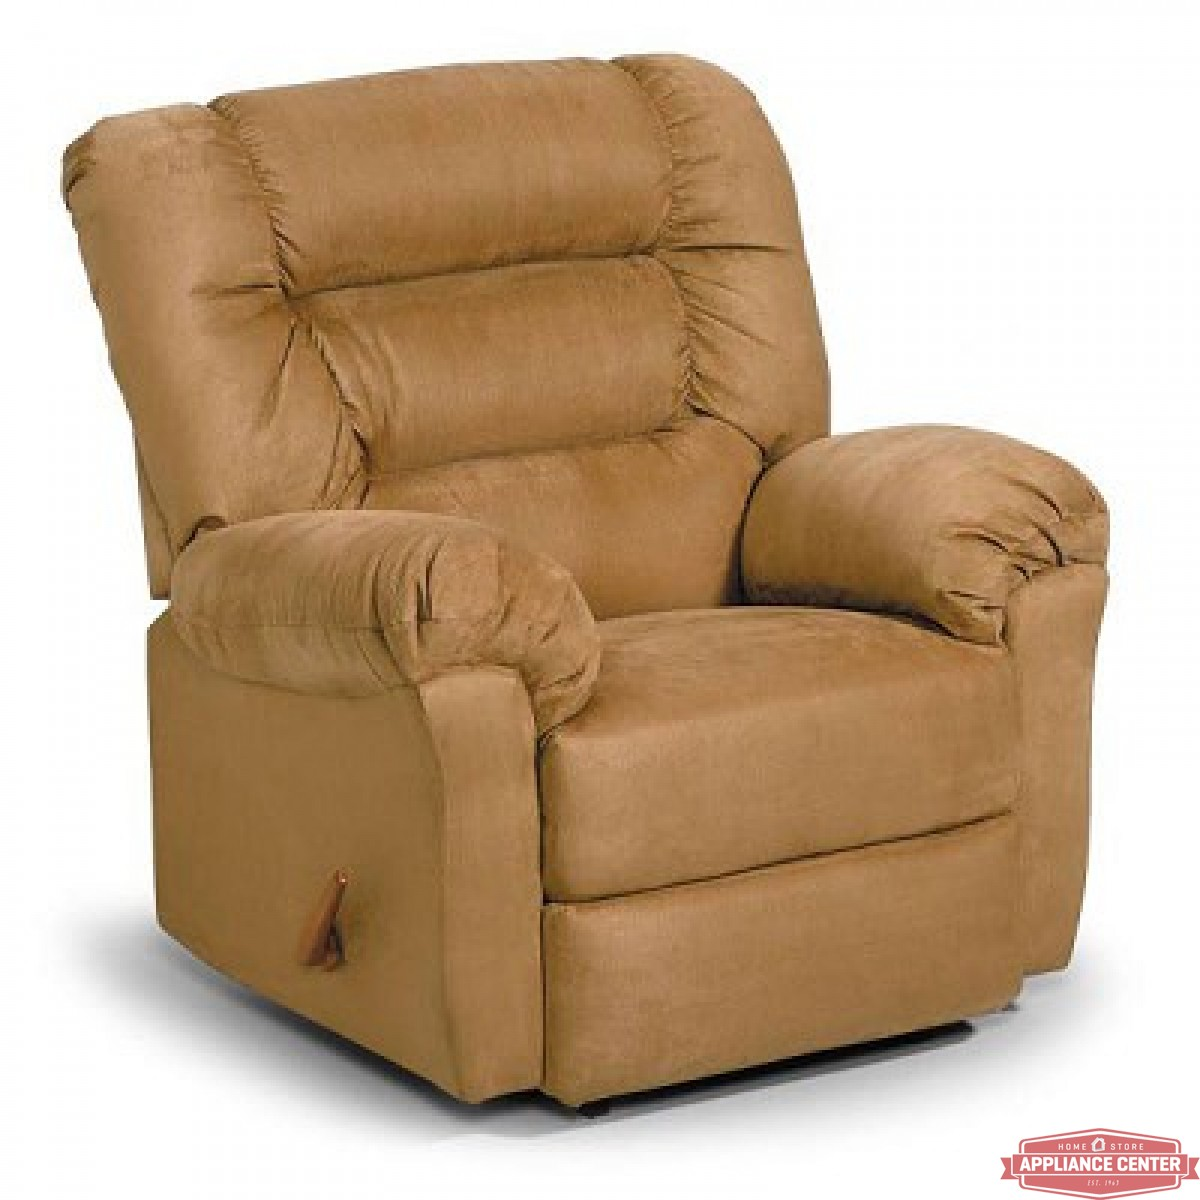 Best 1B51 Troubador Power Lift Recliners in sandy brown for home furniture ideas